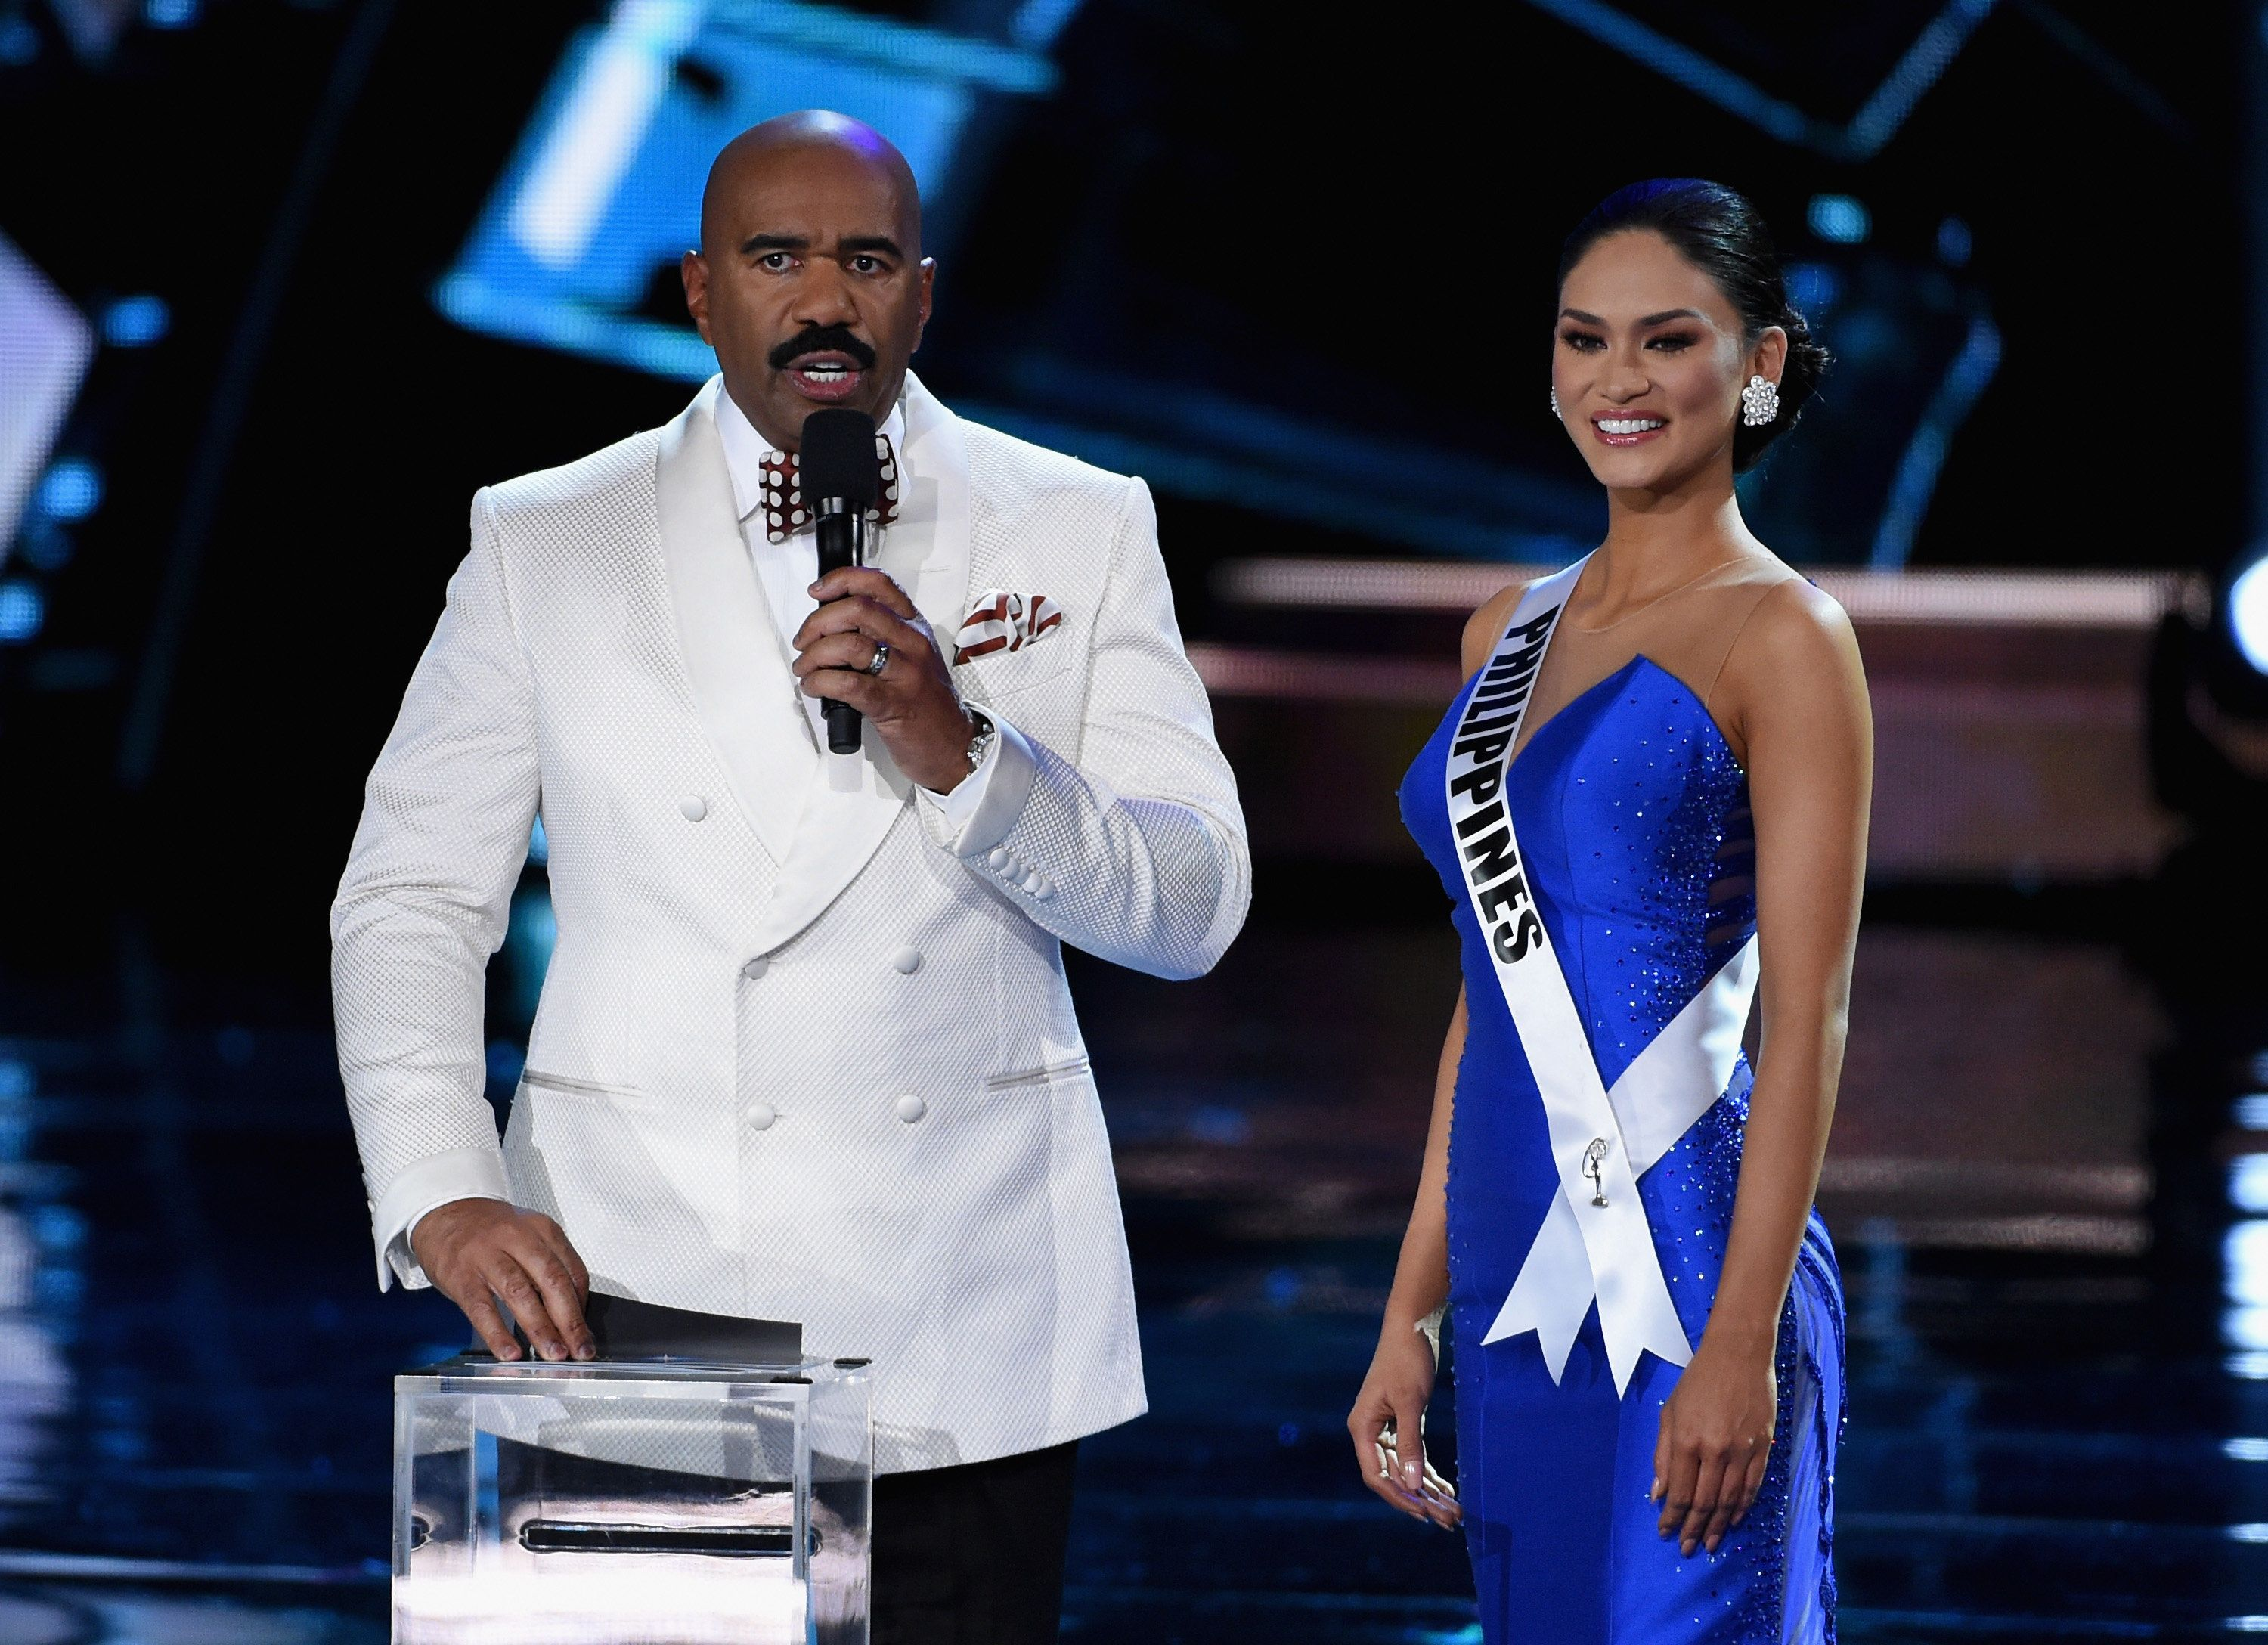 LAS VEGAS, NV - DECEMBER 20:  Host Steve Harvey (L) asks Miss Philippines 2015, Pia Alonzo Wurtzbach, a question during the interview portion of the 2015 Miss Universe Pageant at The Axis at Planet Hollywood Resort & Casino on December 20, 2015 in Las Vegas, Nevada.  (Photo by Ethan Miller/Getty Images)